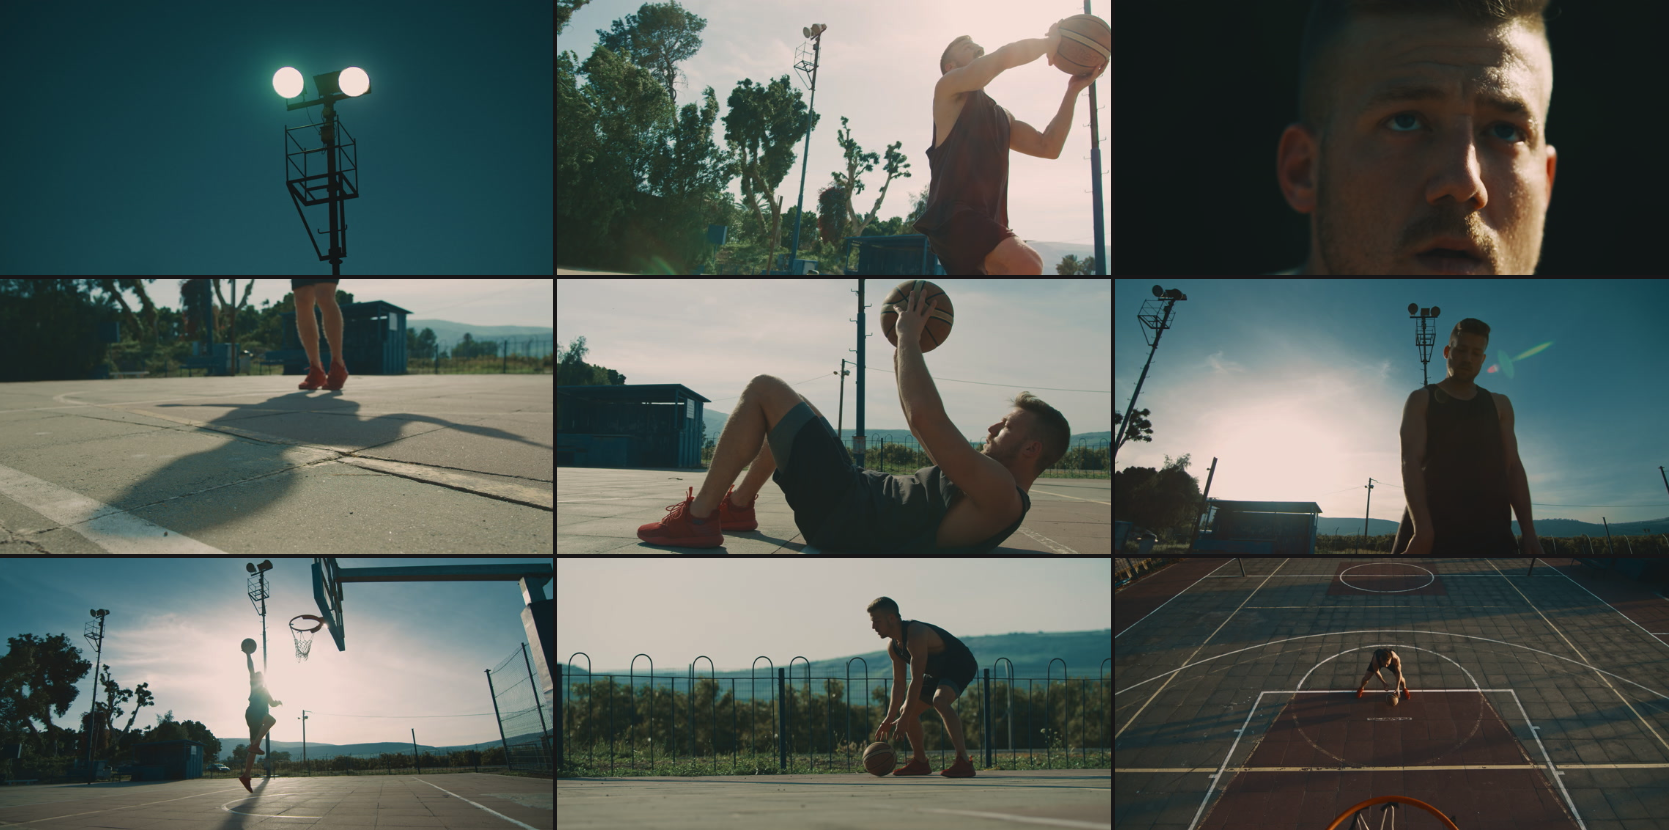 """This """"Basketball at Sunset"""" collection by Filmmaker, Ami Bornstein, tells a story in the same scene by using a variety of angles and shots."""